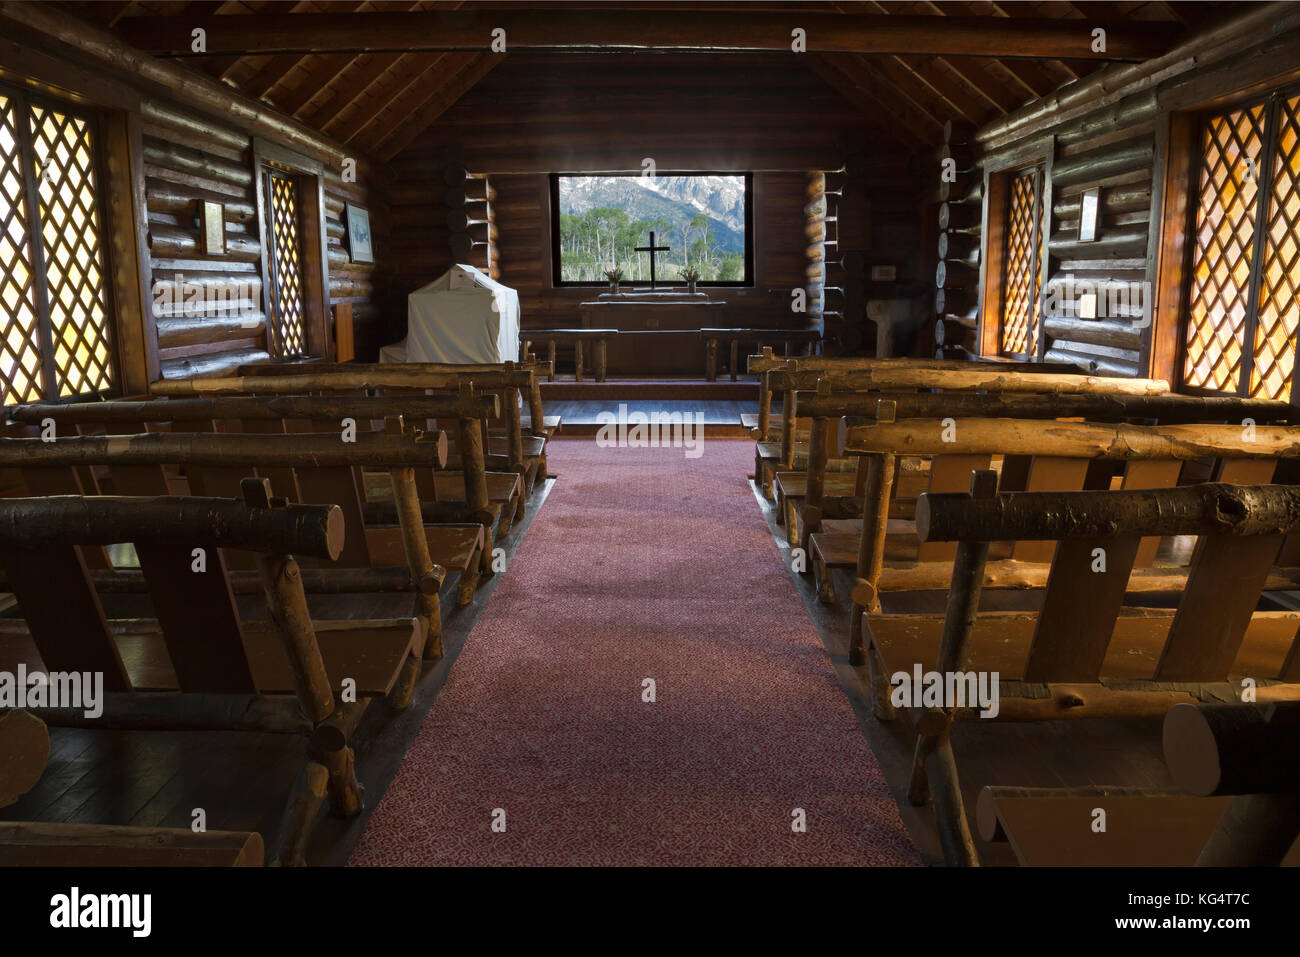 WY02533-00...WYOMING - Interior of the Chapel of the Transfiguration, a small, historical log church in Grand Teton - Stock Image